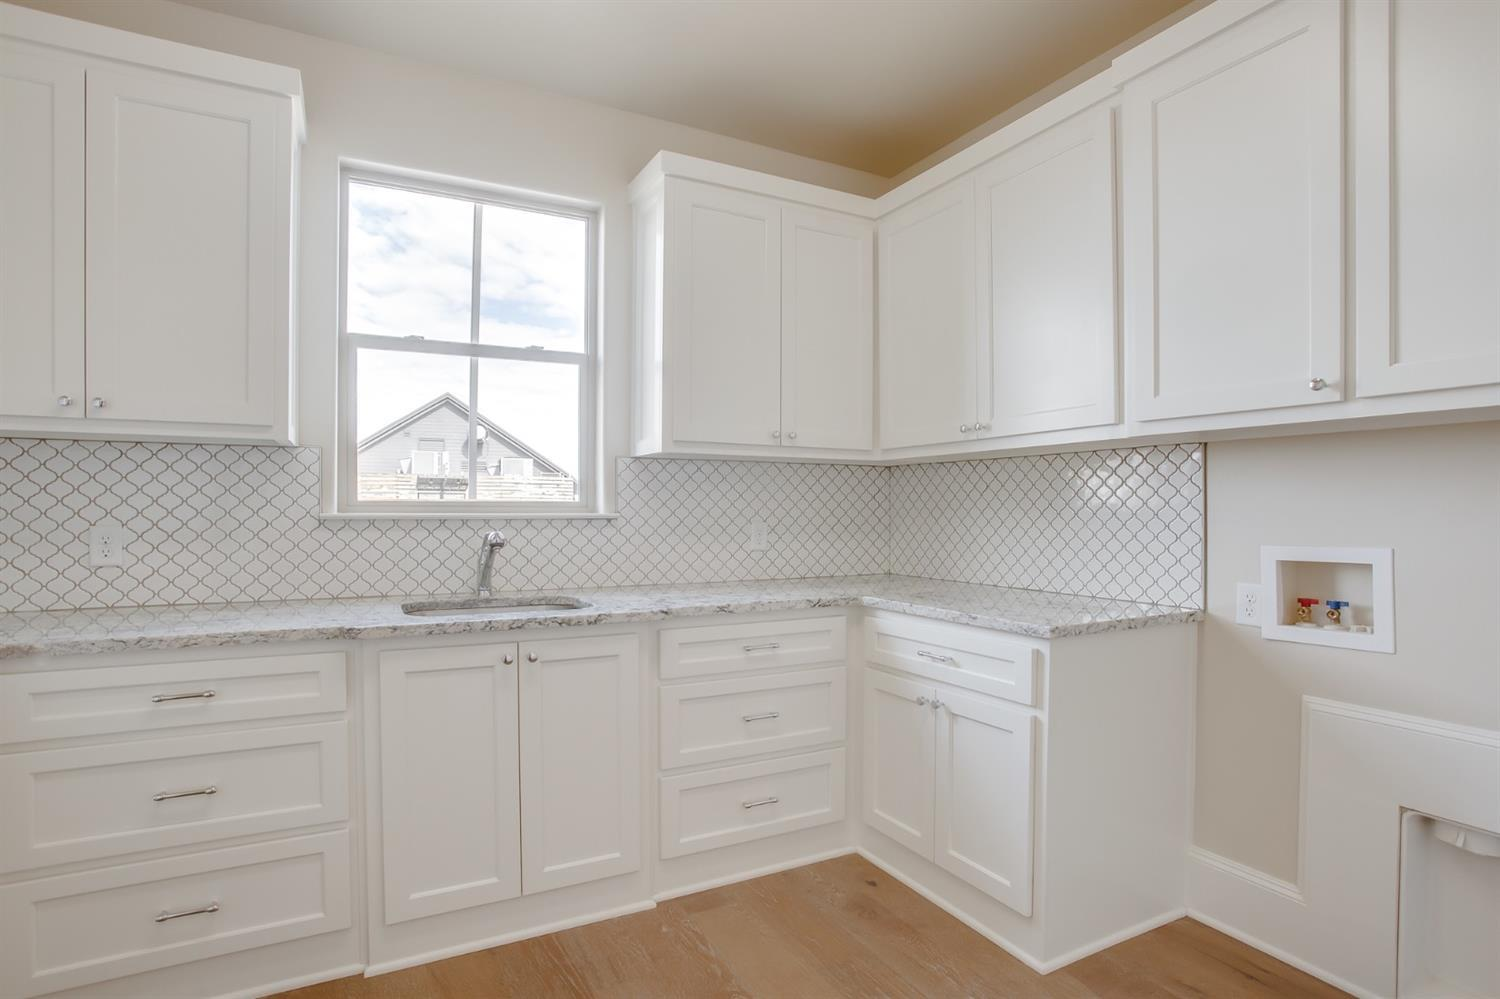 Enchanting Chinese Kitchen Lubbock Ensign - Kitchen Cabinets | Ideas ...